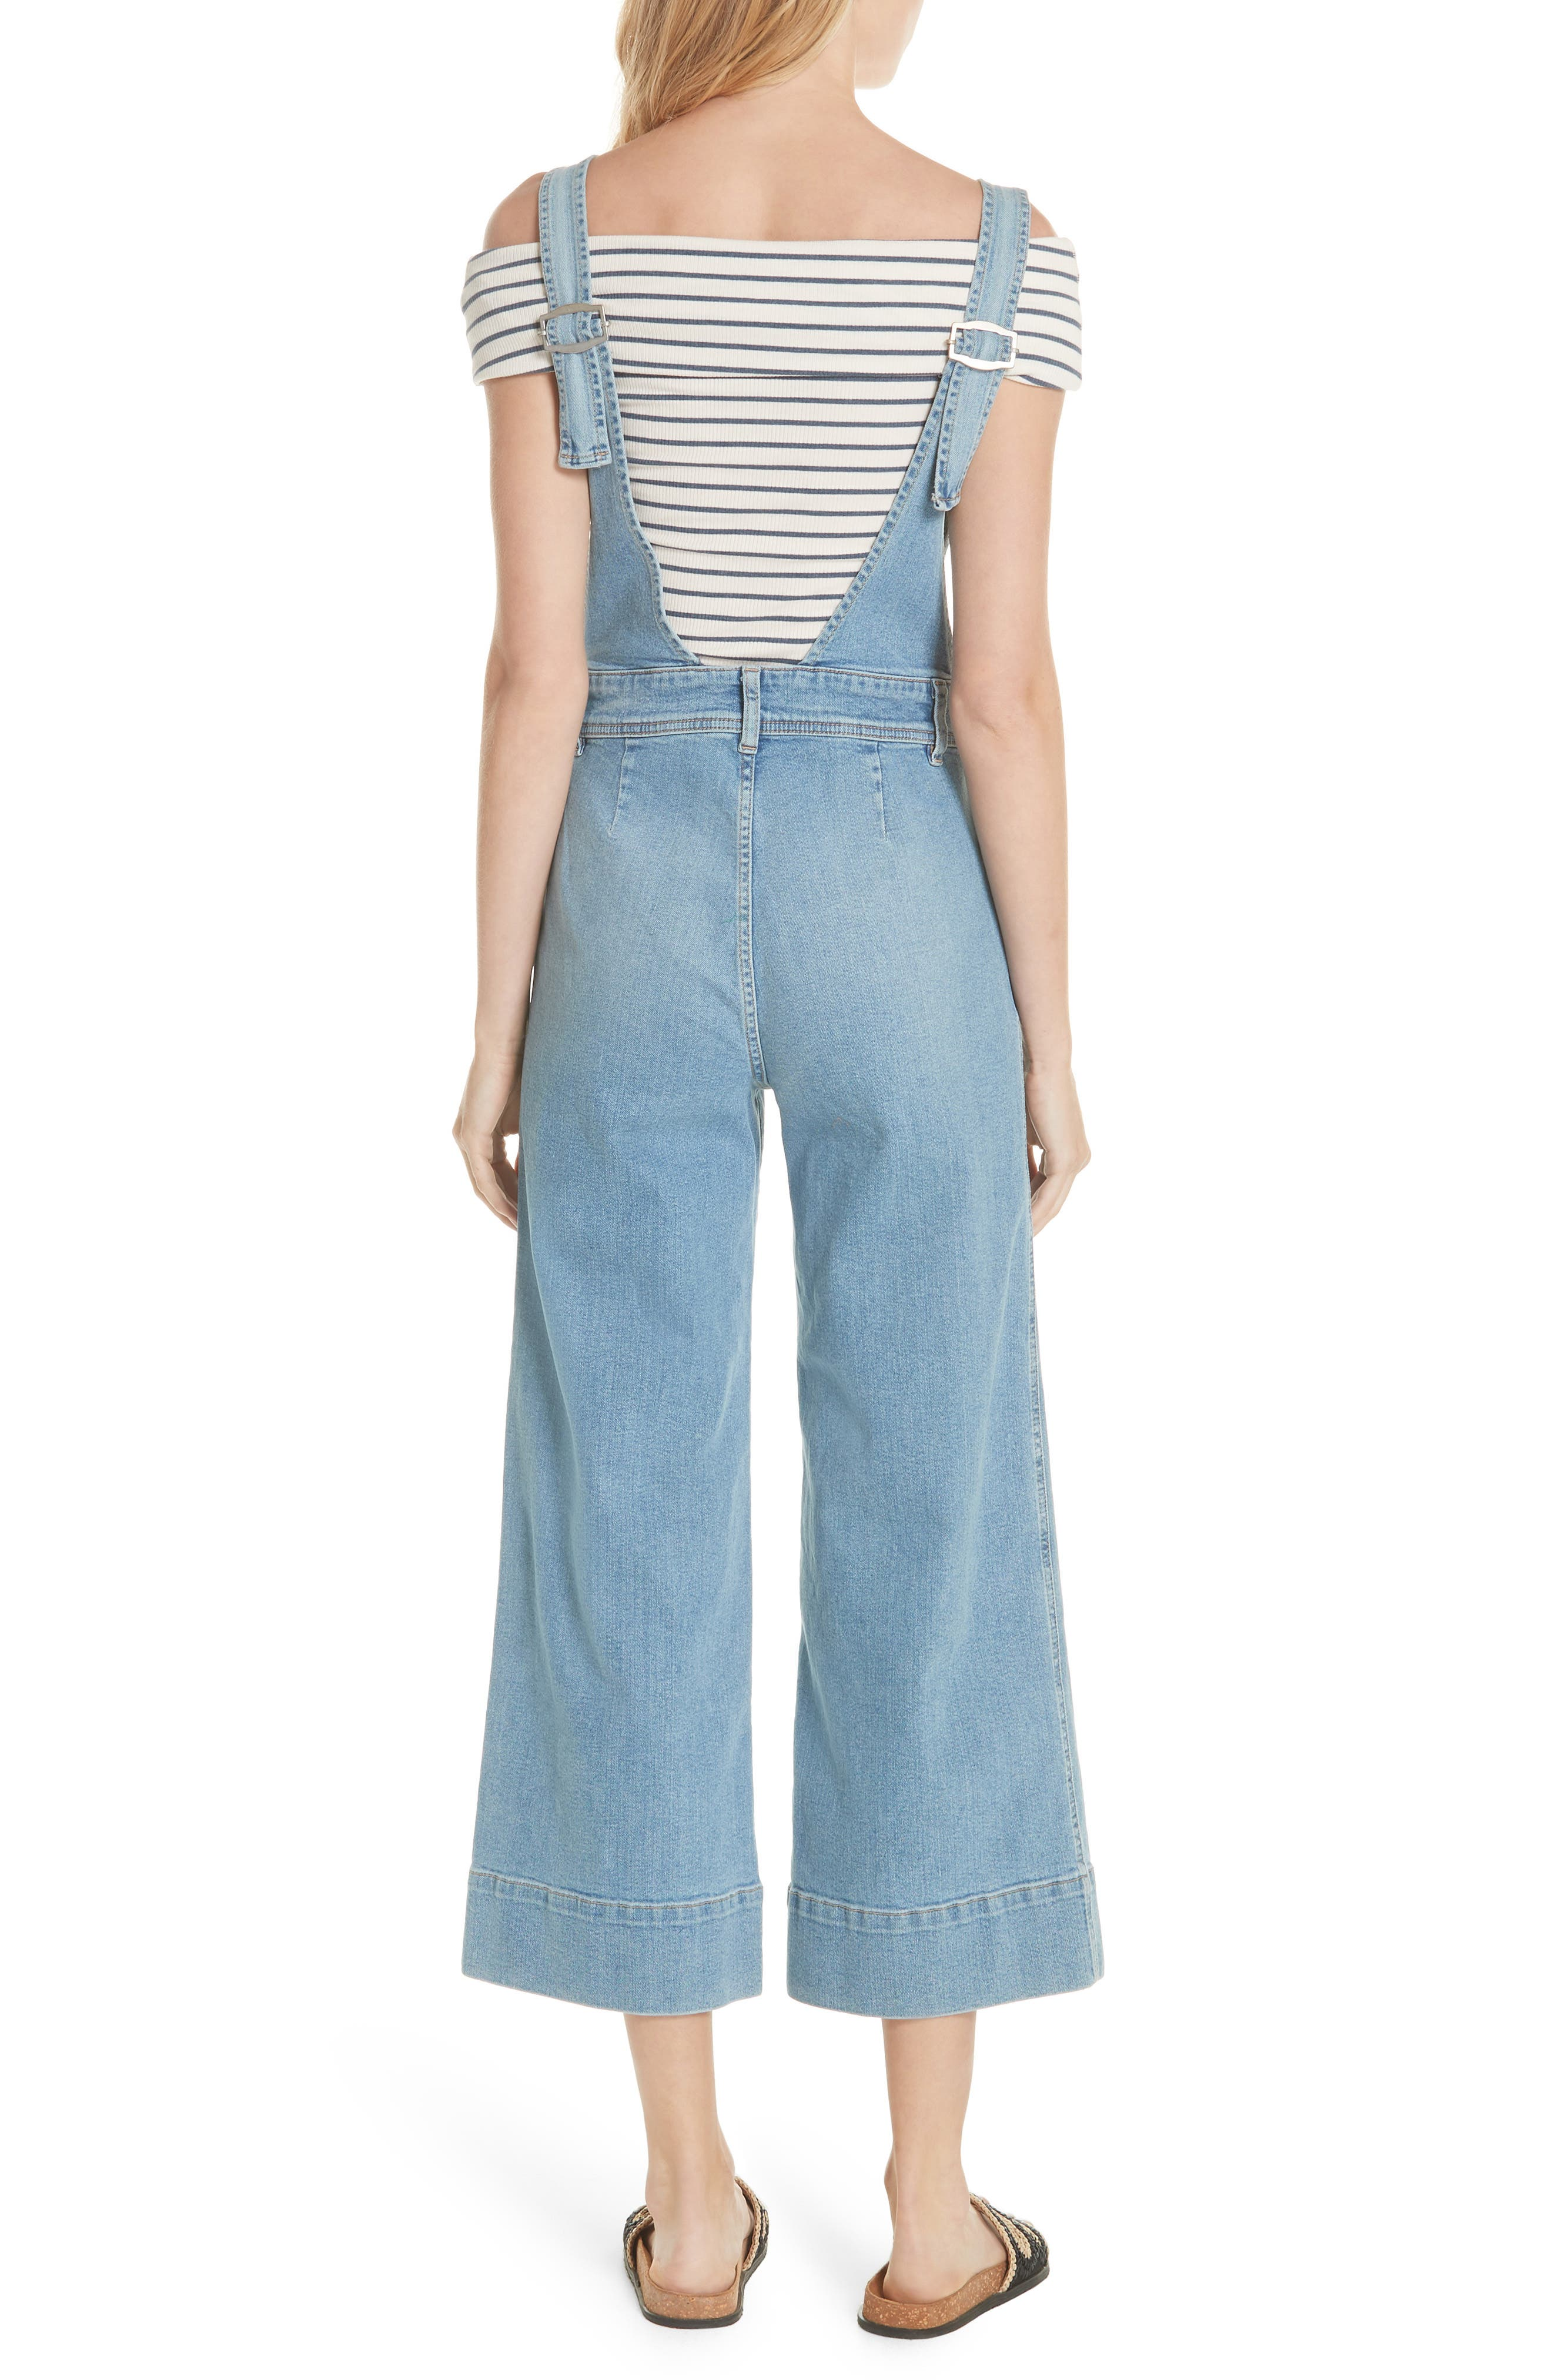 We the Free by Free People A-Line Overalls,                             Alternate thumbnail 2, color,                             456